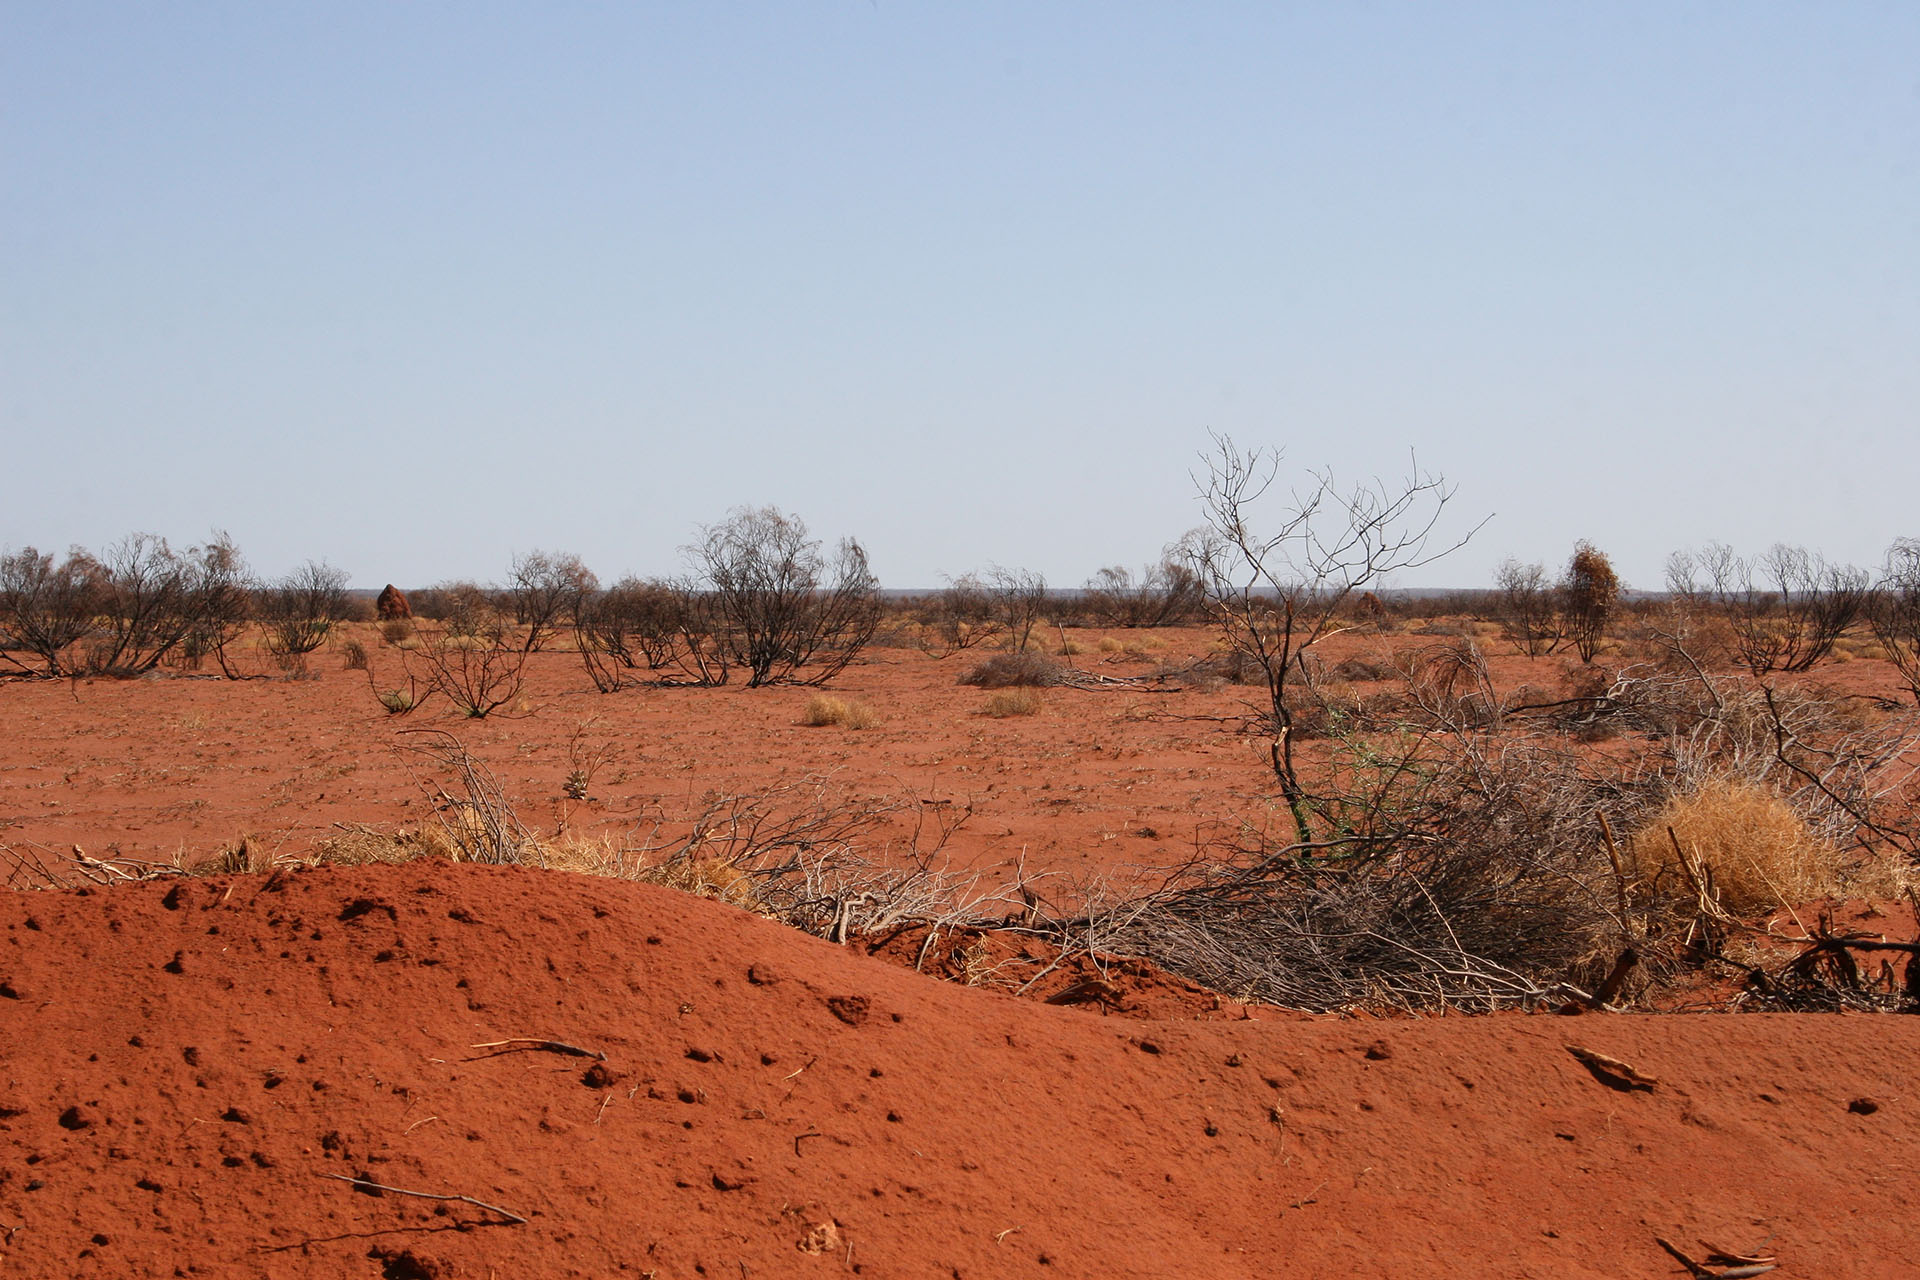 Red desert and termite mounds far ahead.